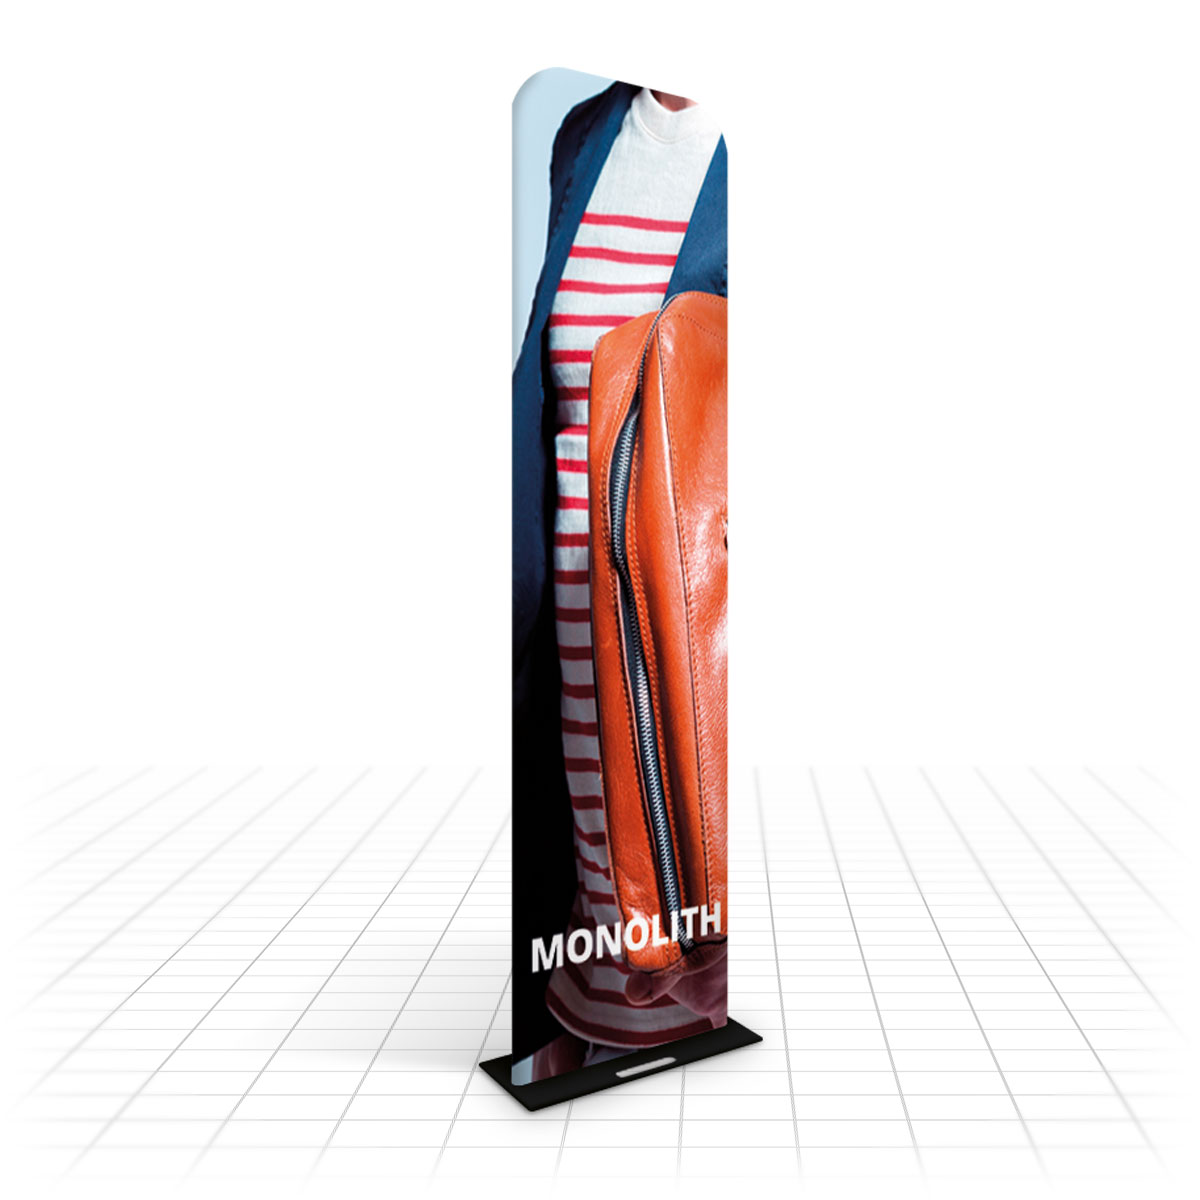 Formulate Monolith | Formulate Banners